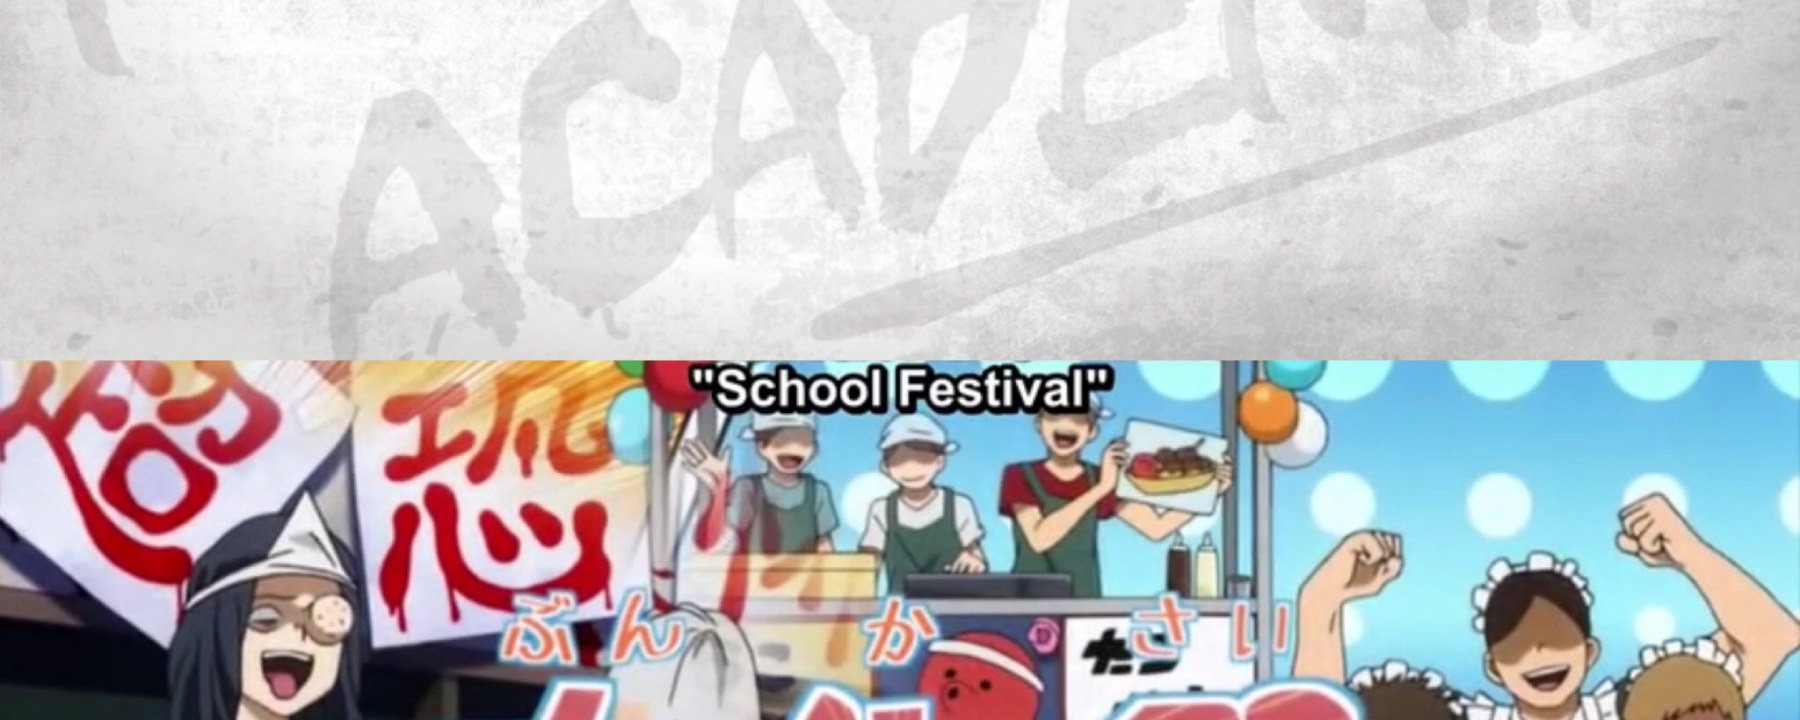 School Festival Title Card